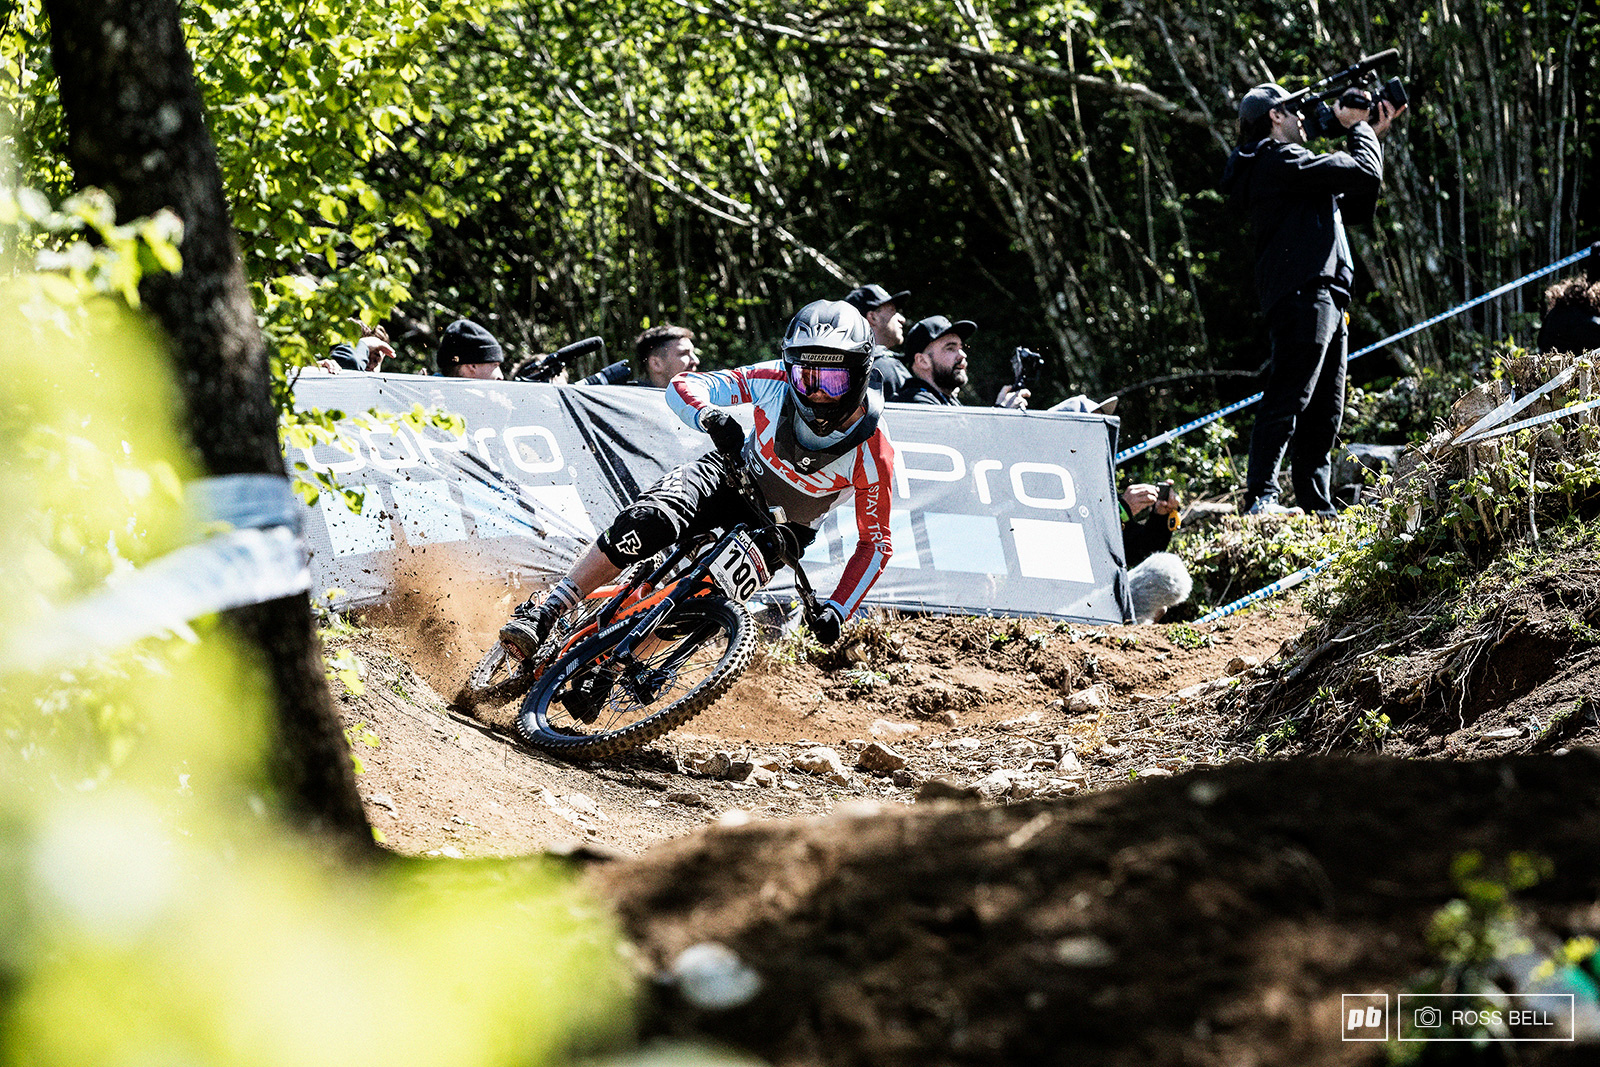 After a wild ride through the wall section riders have a beautiful looking catch berm to scoop them up. Noel Niederberger putting his side knobs to good use.